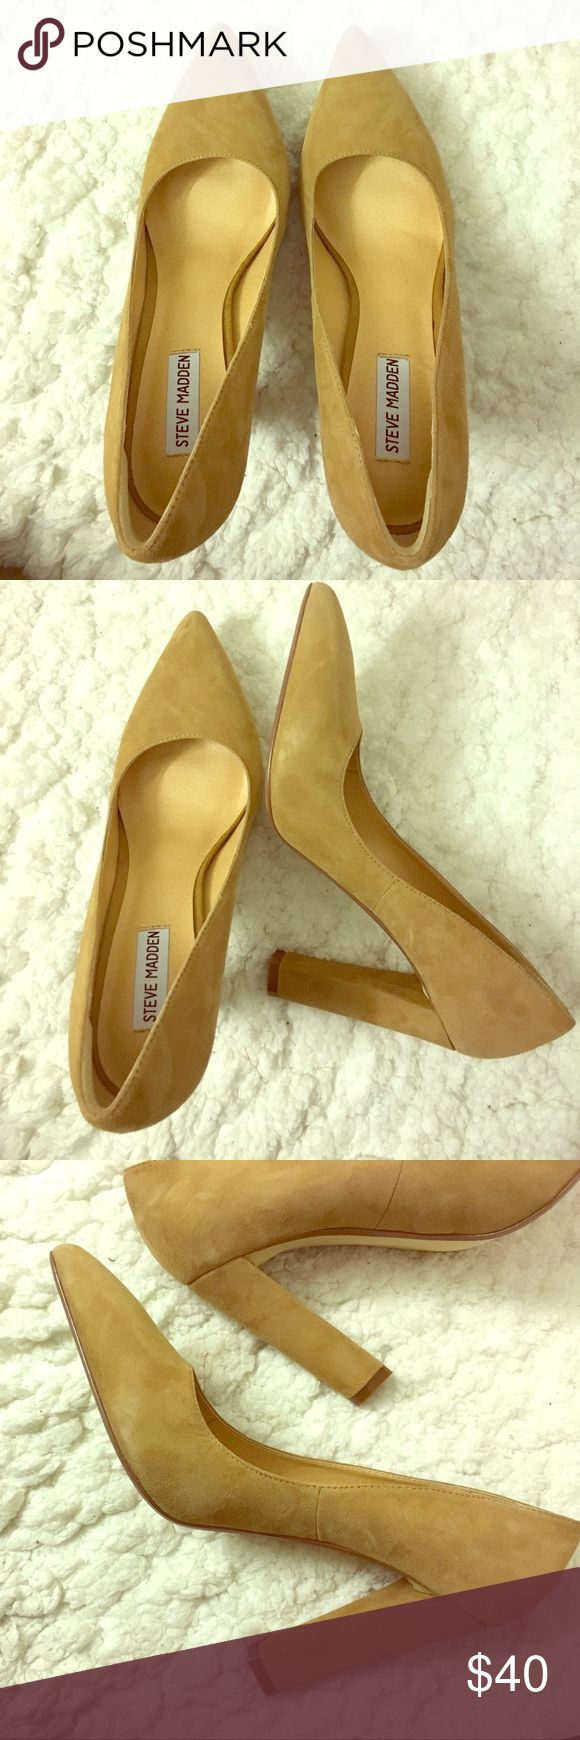 Steve Madden nude suede block heel pumps Steve Madden nude suede block heel pumps - never worn and super on trend! 4 inch heel. Size 9.5. Adhesive heel grips are already in for added support and comfort to prevent your heel from slipping out or having friction from the back of the shoe, but very easily removed Steve Madden Shoes Heels